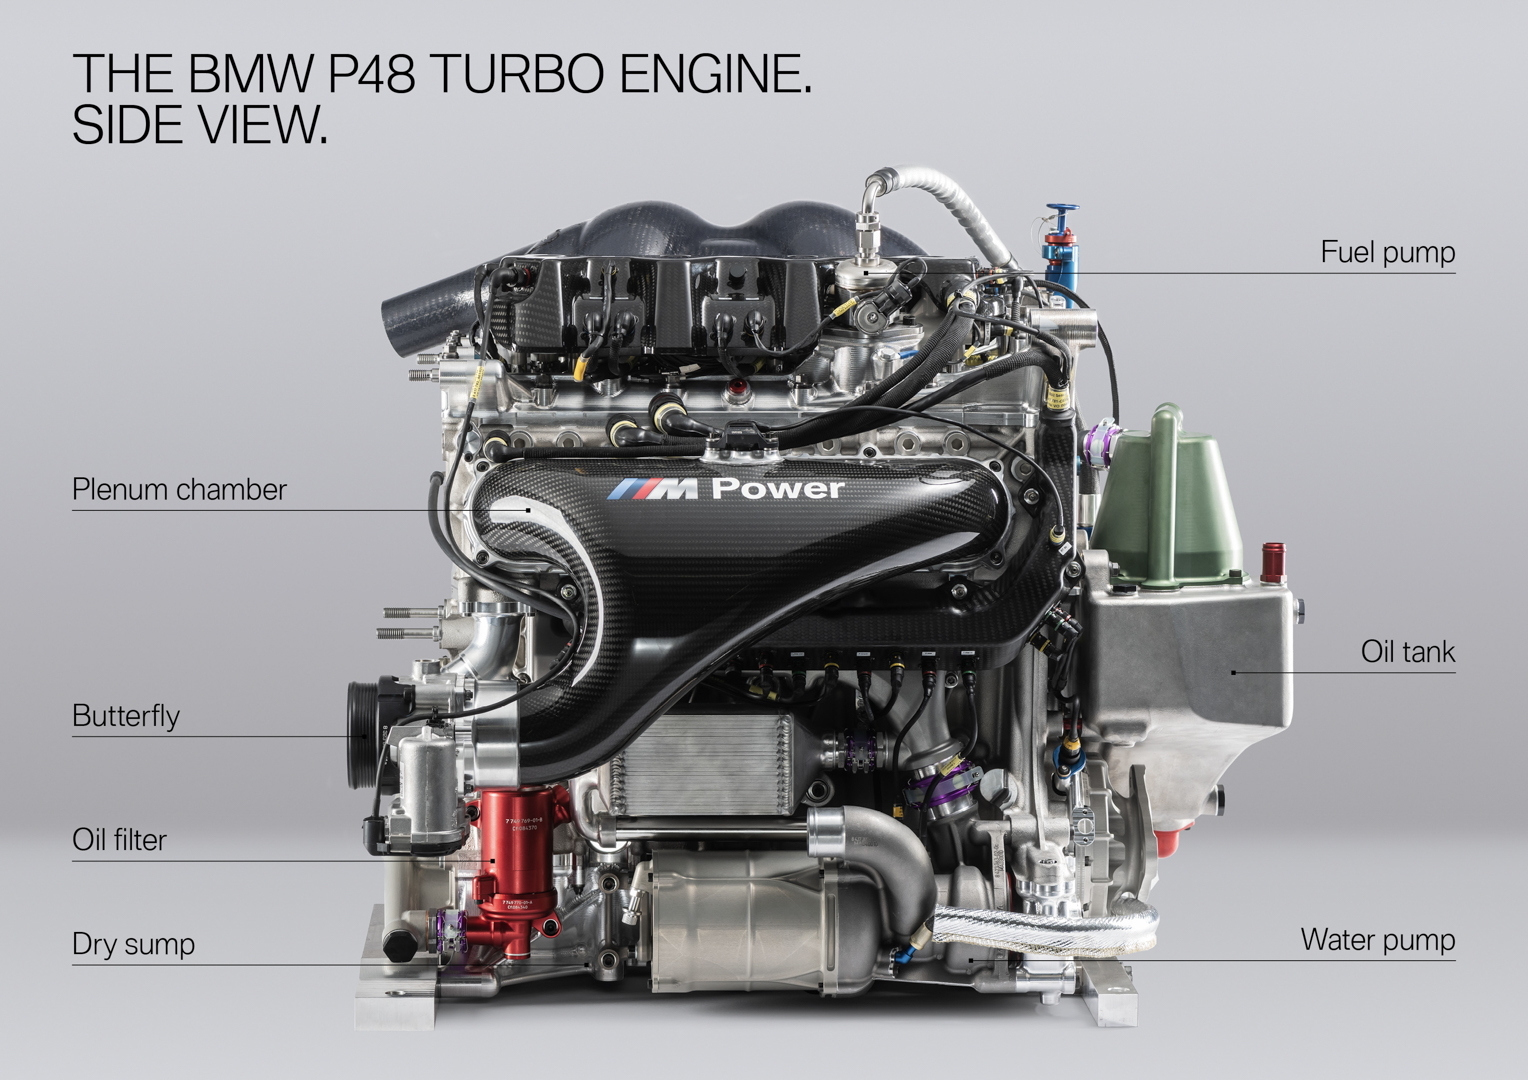 New BMW DTM Engine shows off its Turbo Power Roots